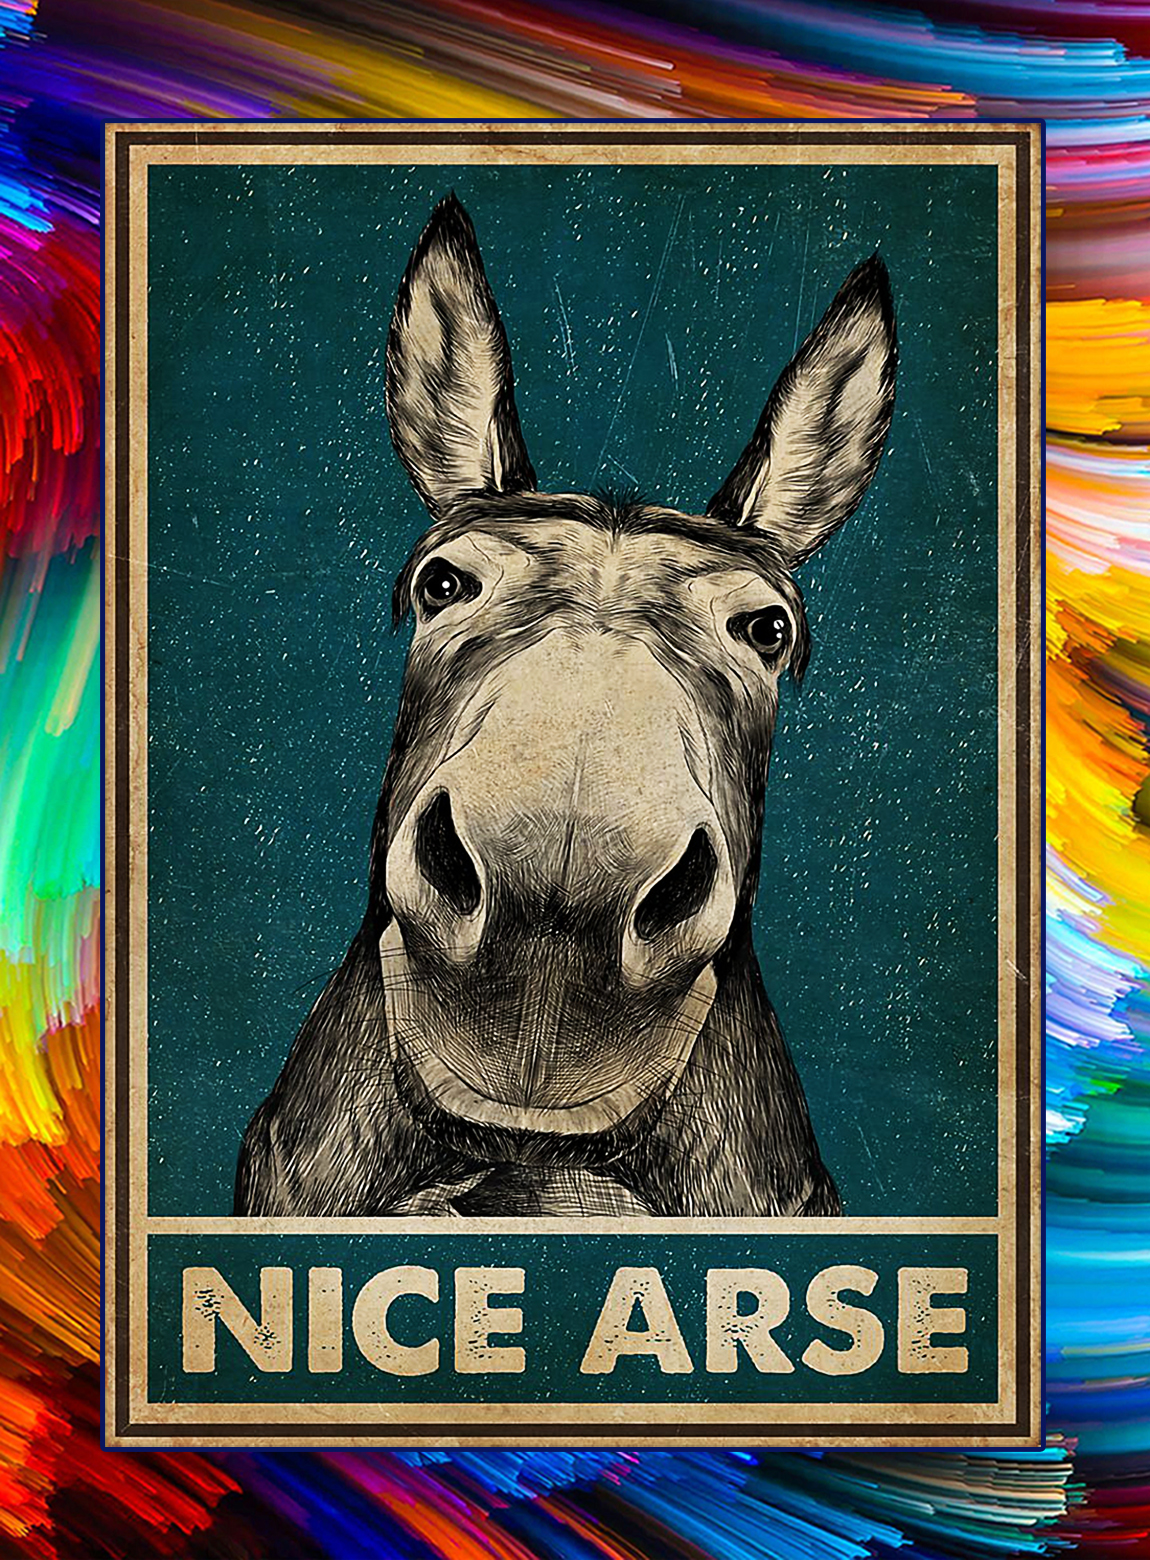 Nice arse donkey poster - A3